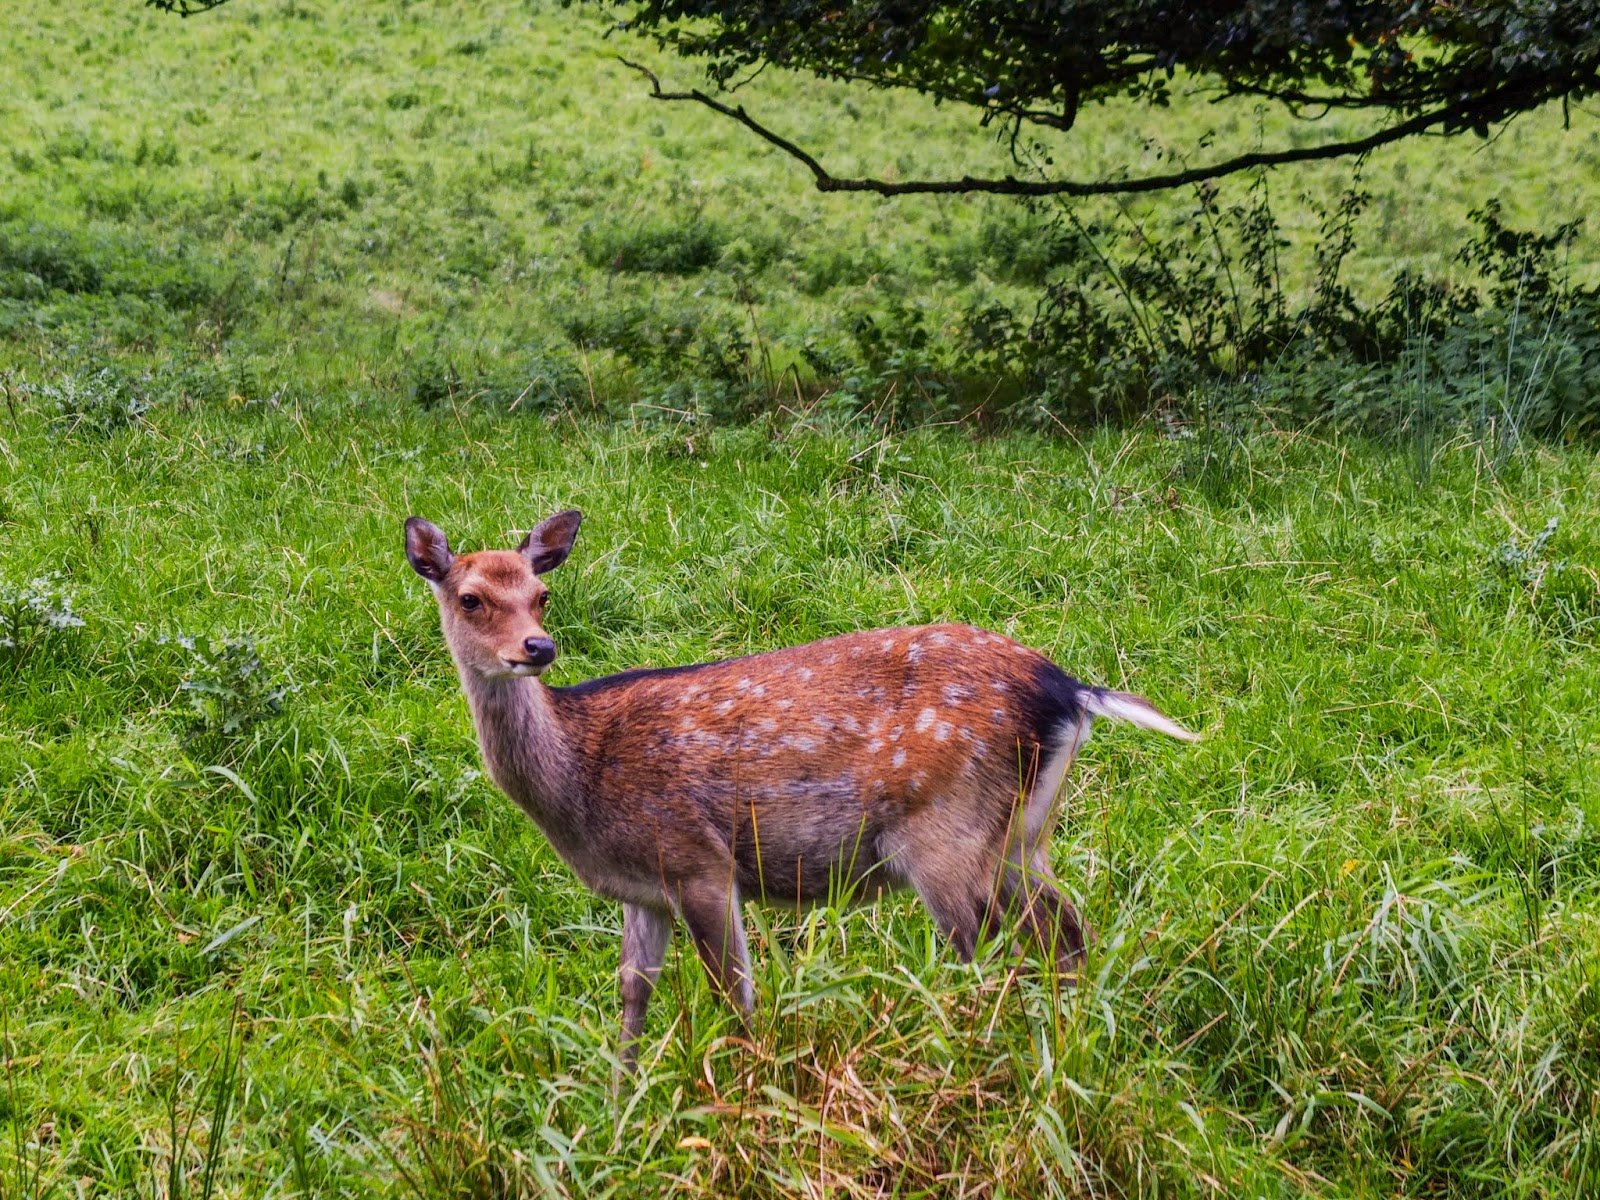 A doe in grass in the Doneraile Wildlife Park, Co.Cork.